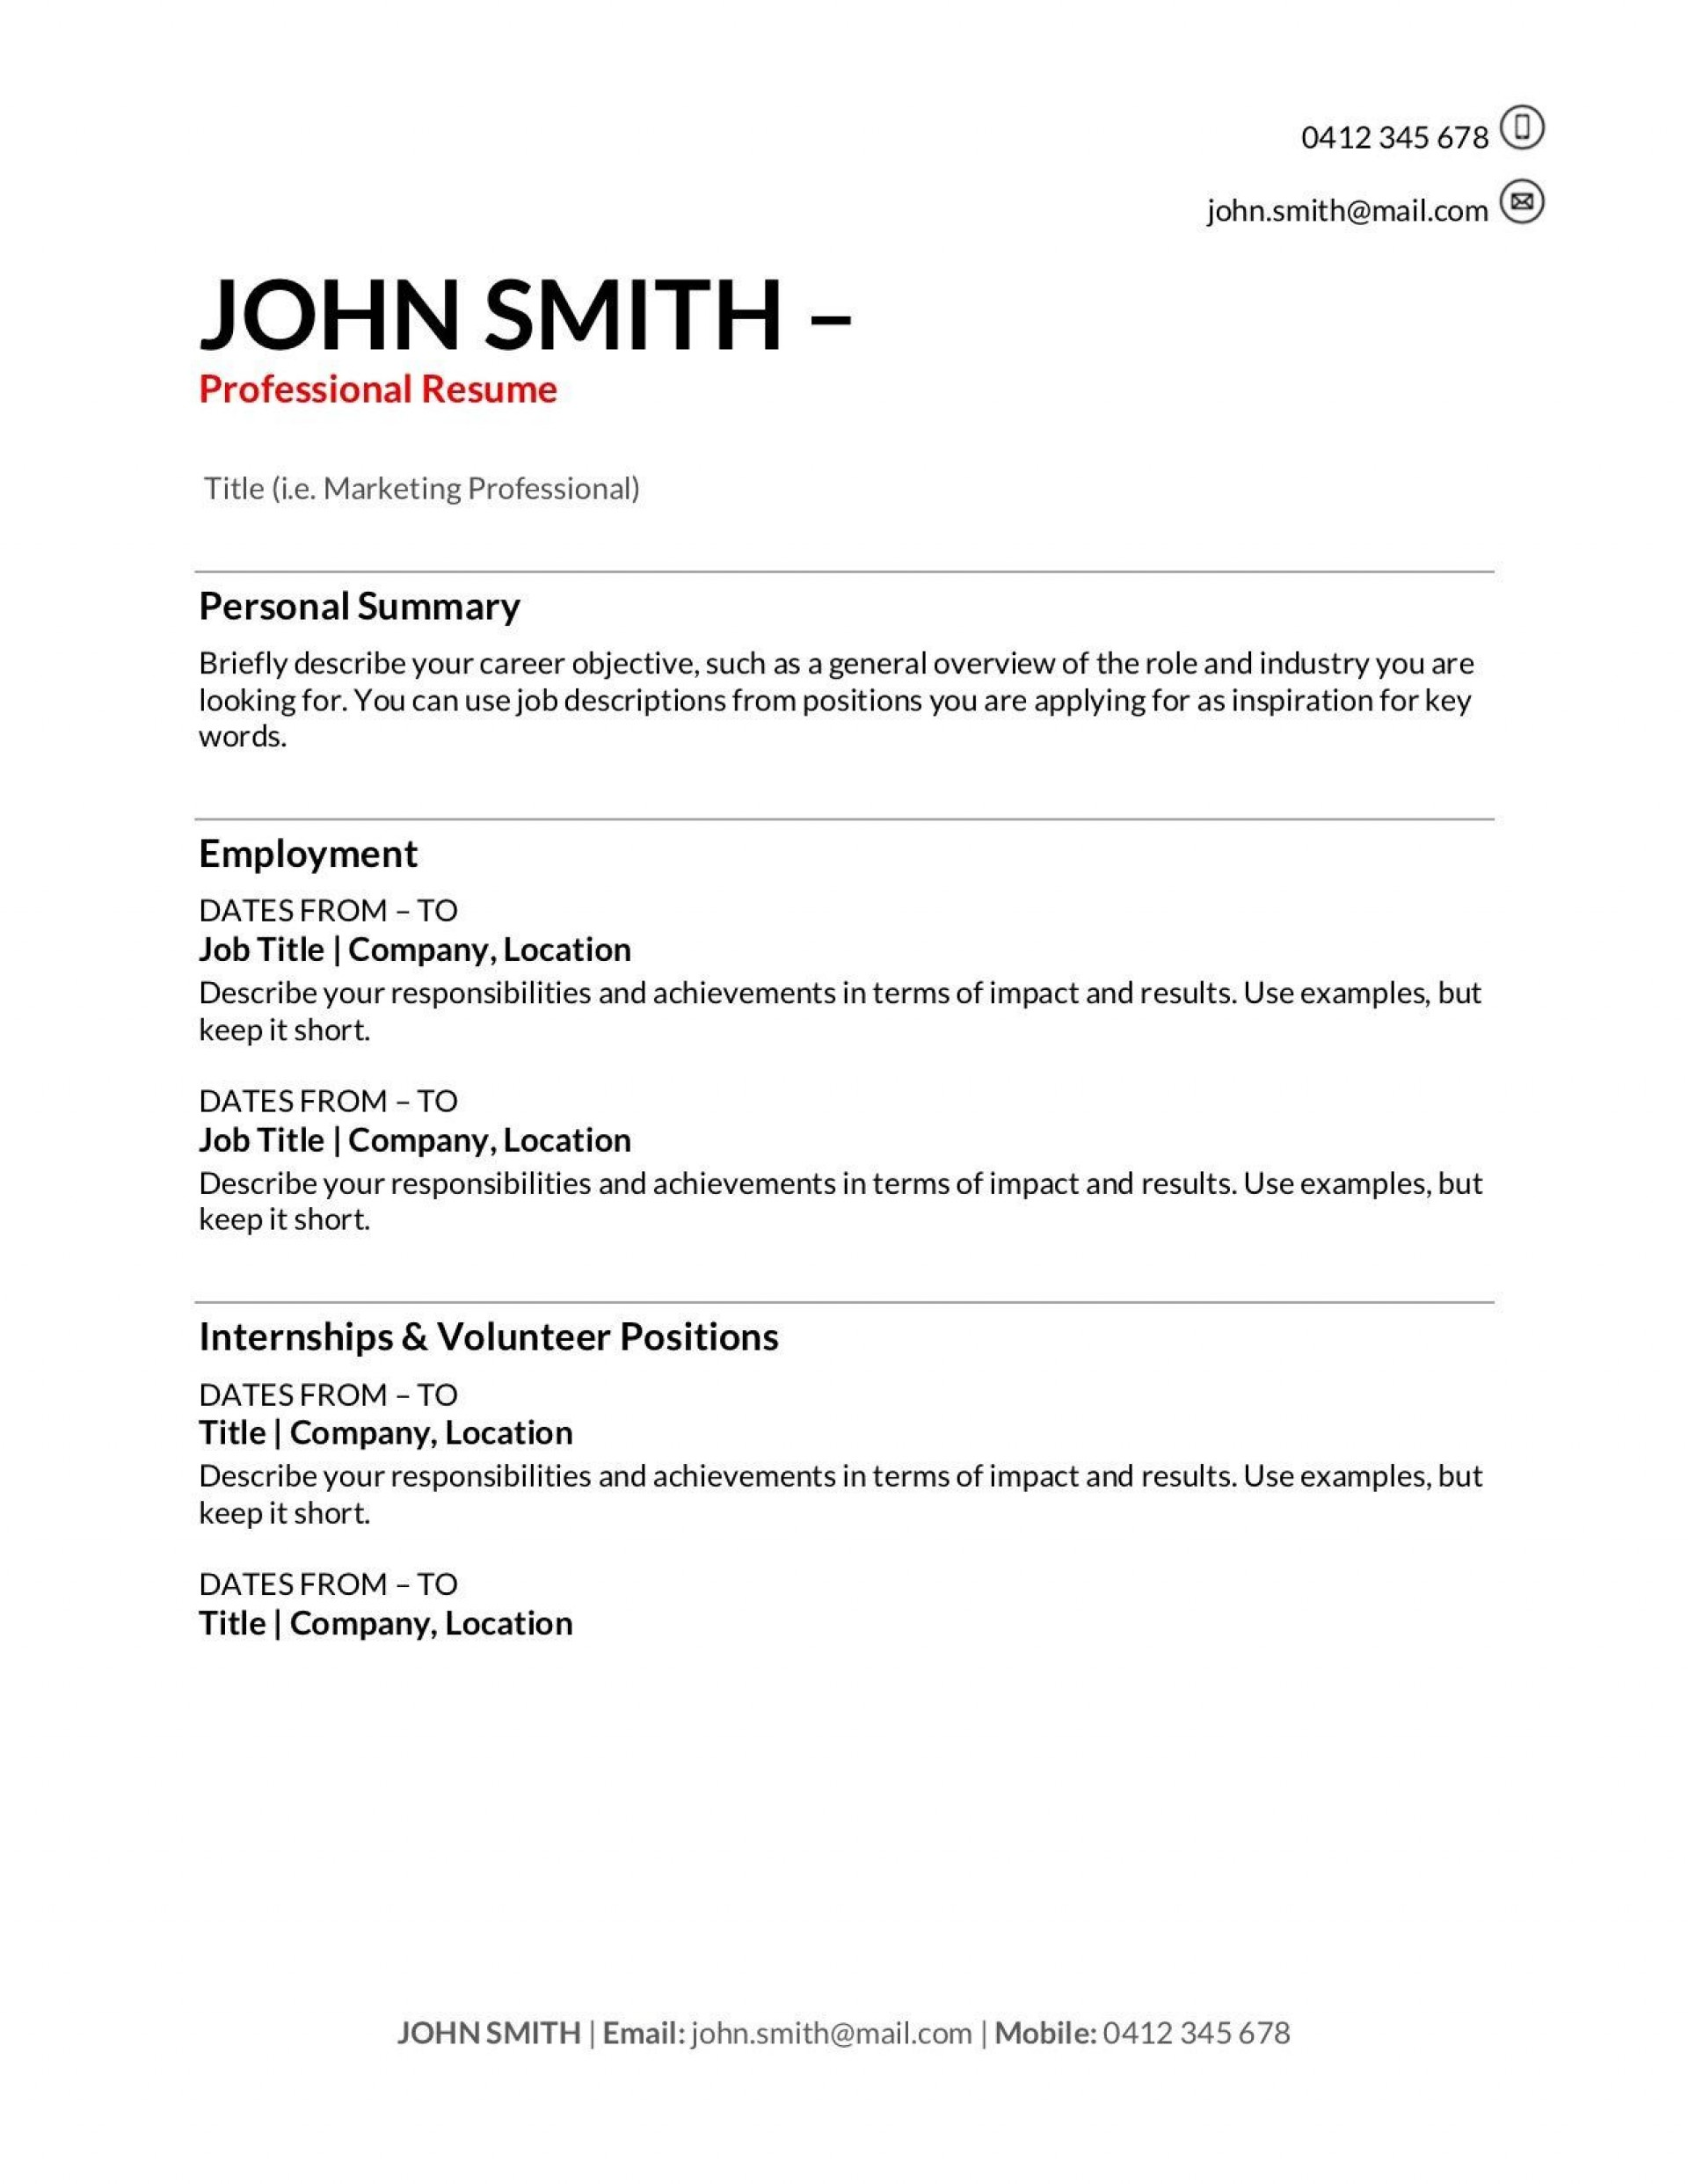 Resume Template For First Job from www.addictionary.org